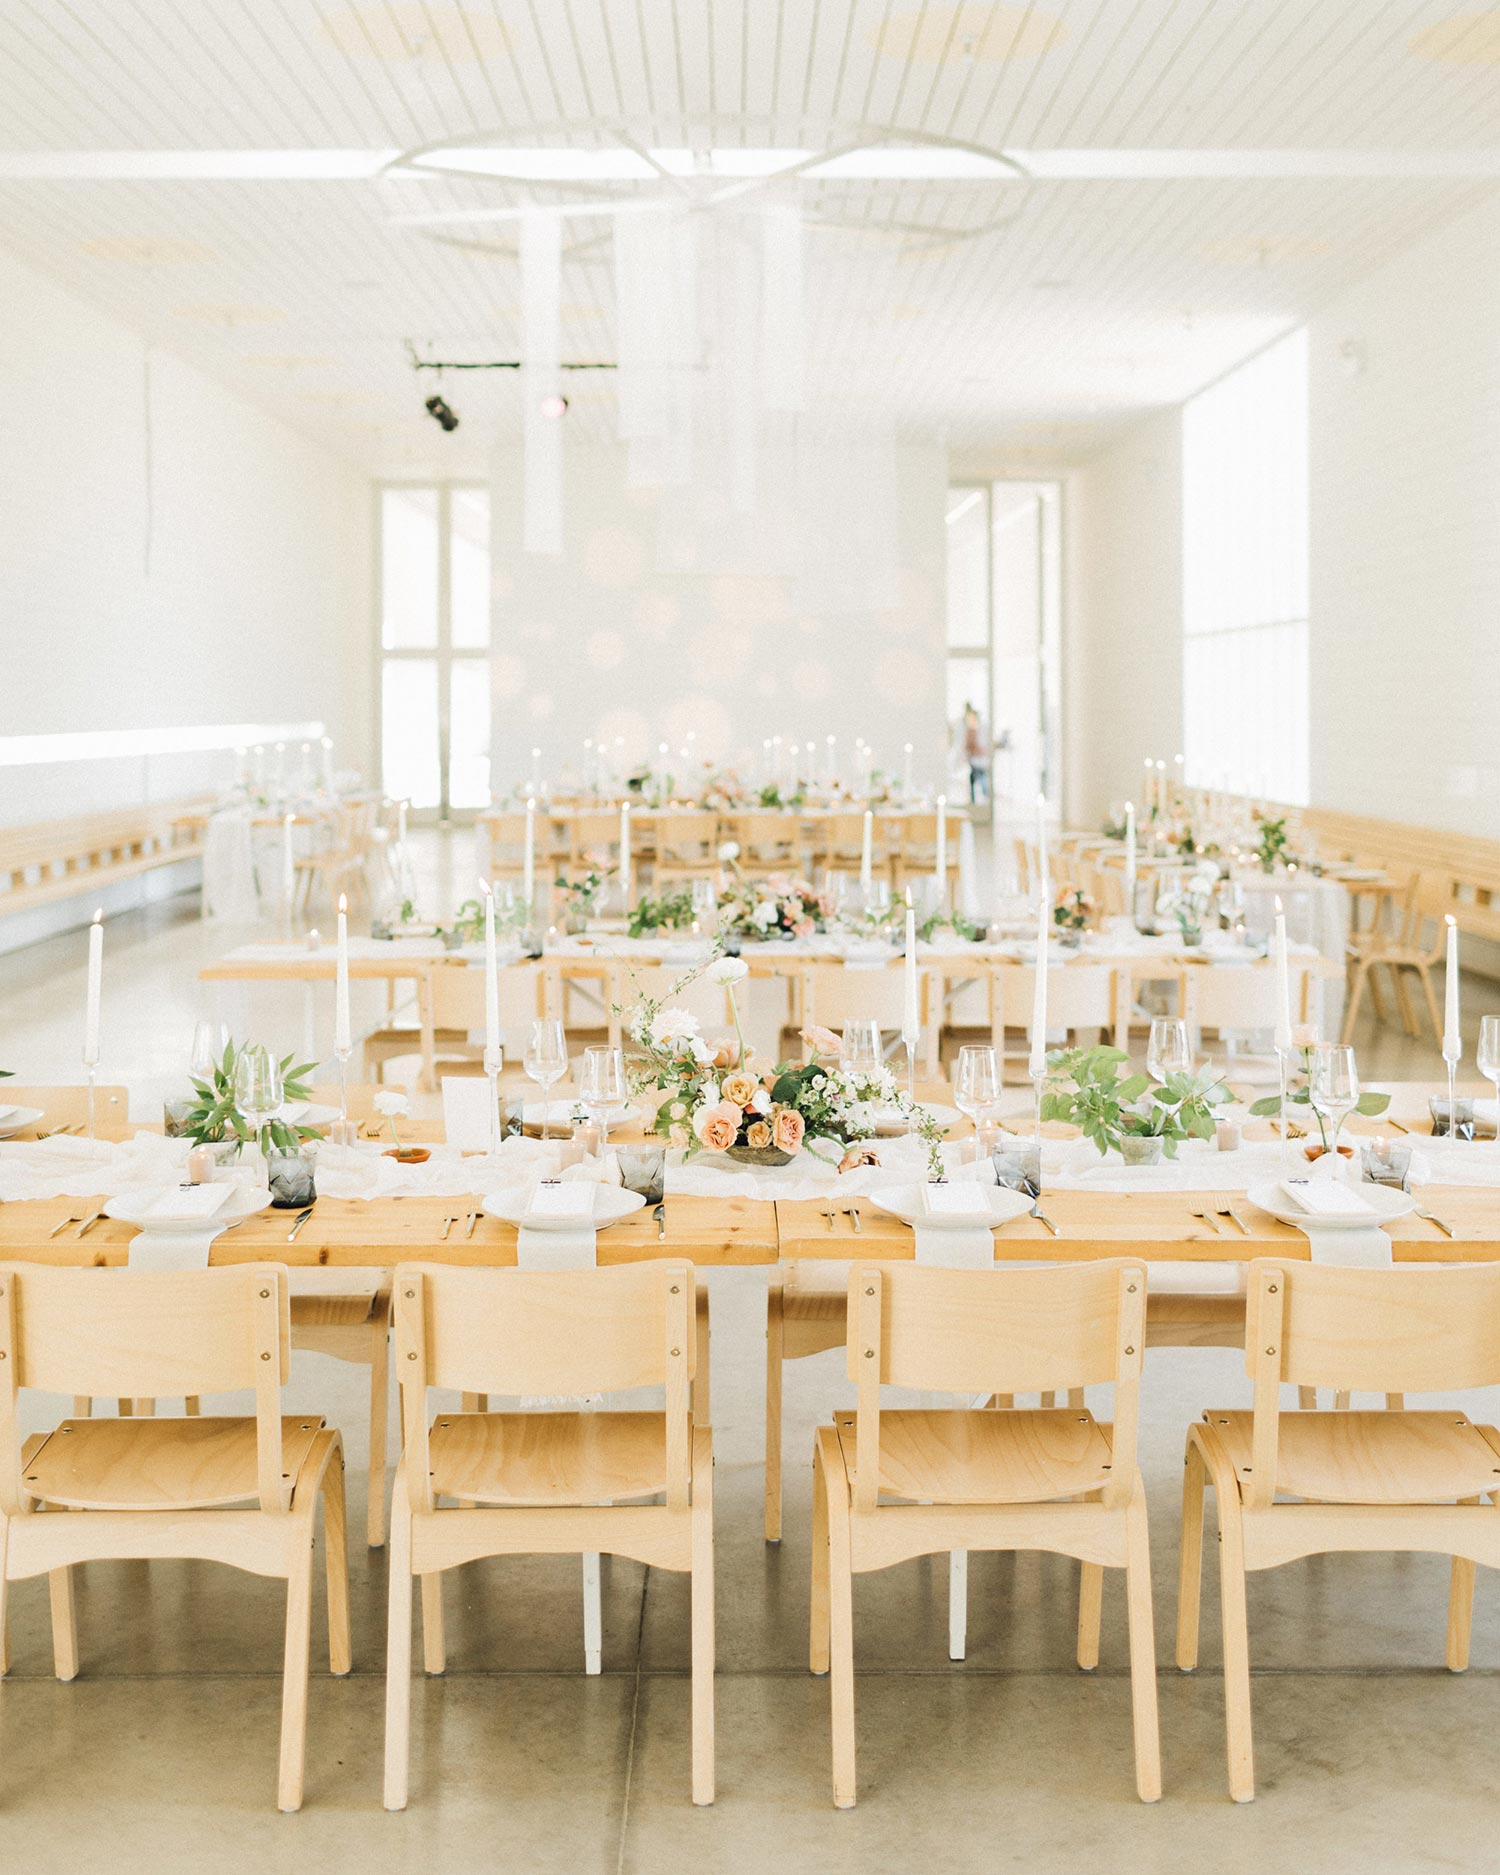 Reception flowers by florist Color Theory Collective